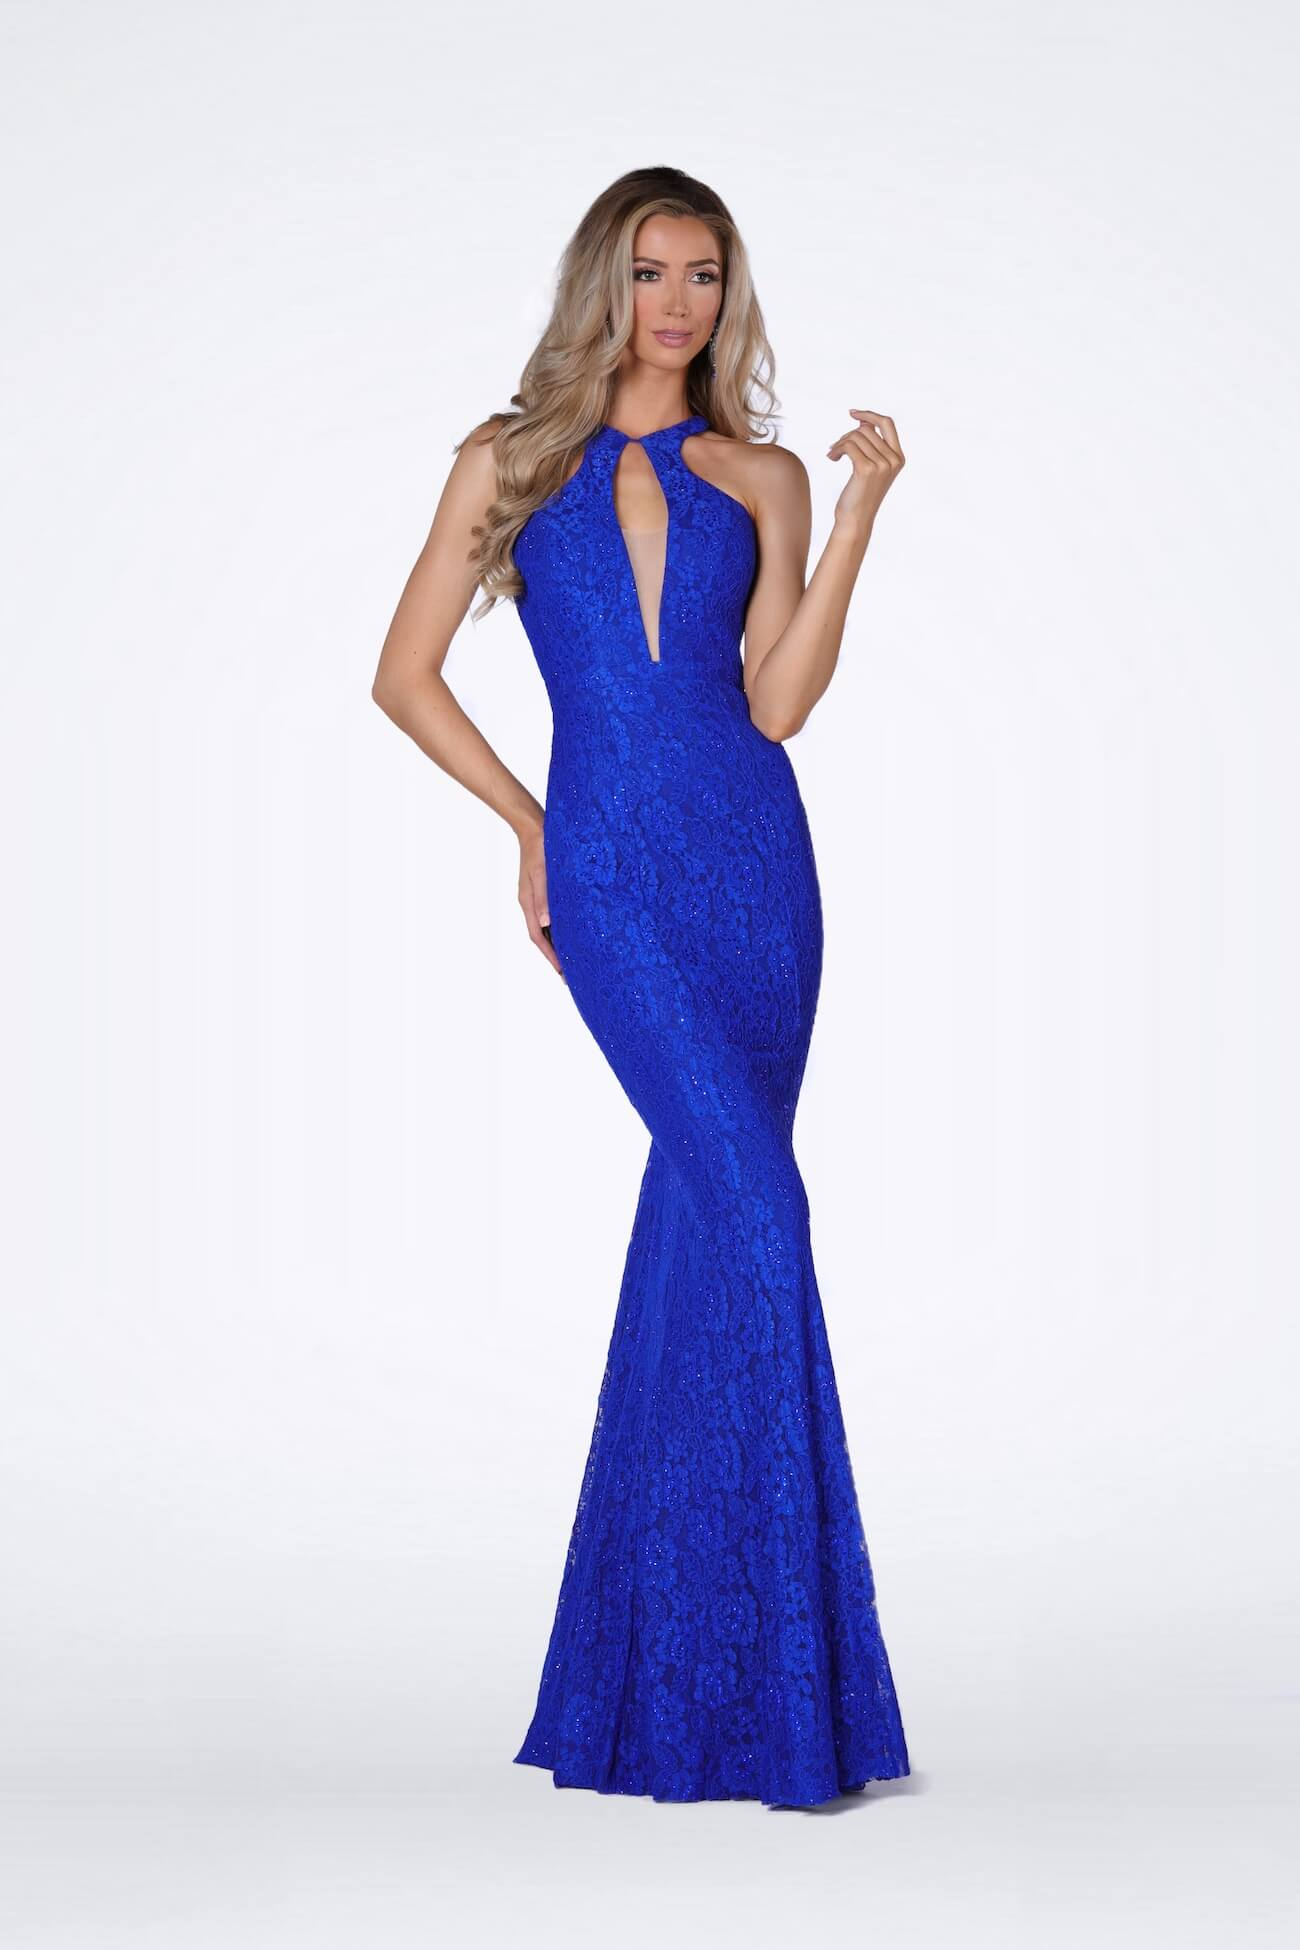 Vienna Blue Size 2 Lace Backless Mermaid Dress on Queenly